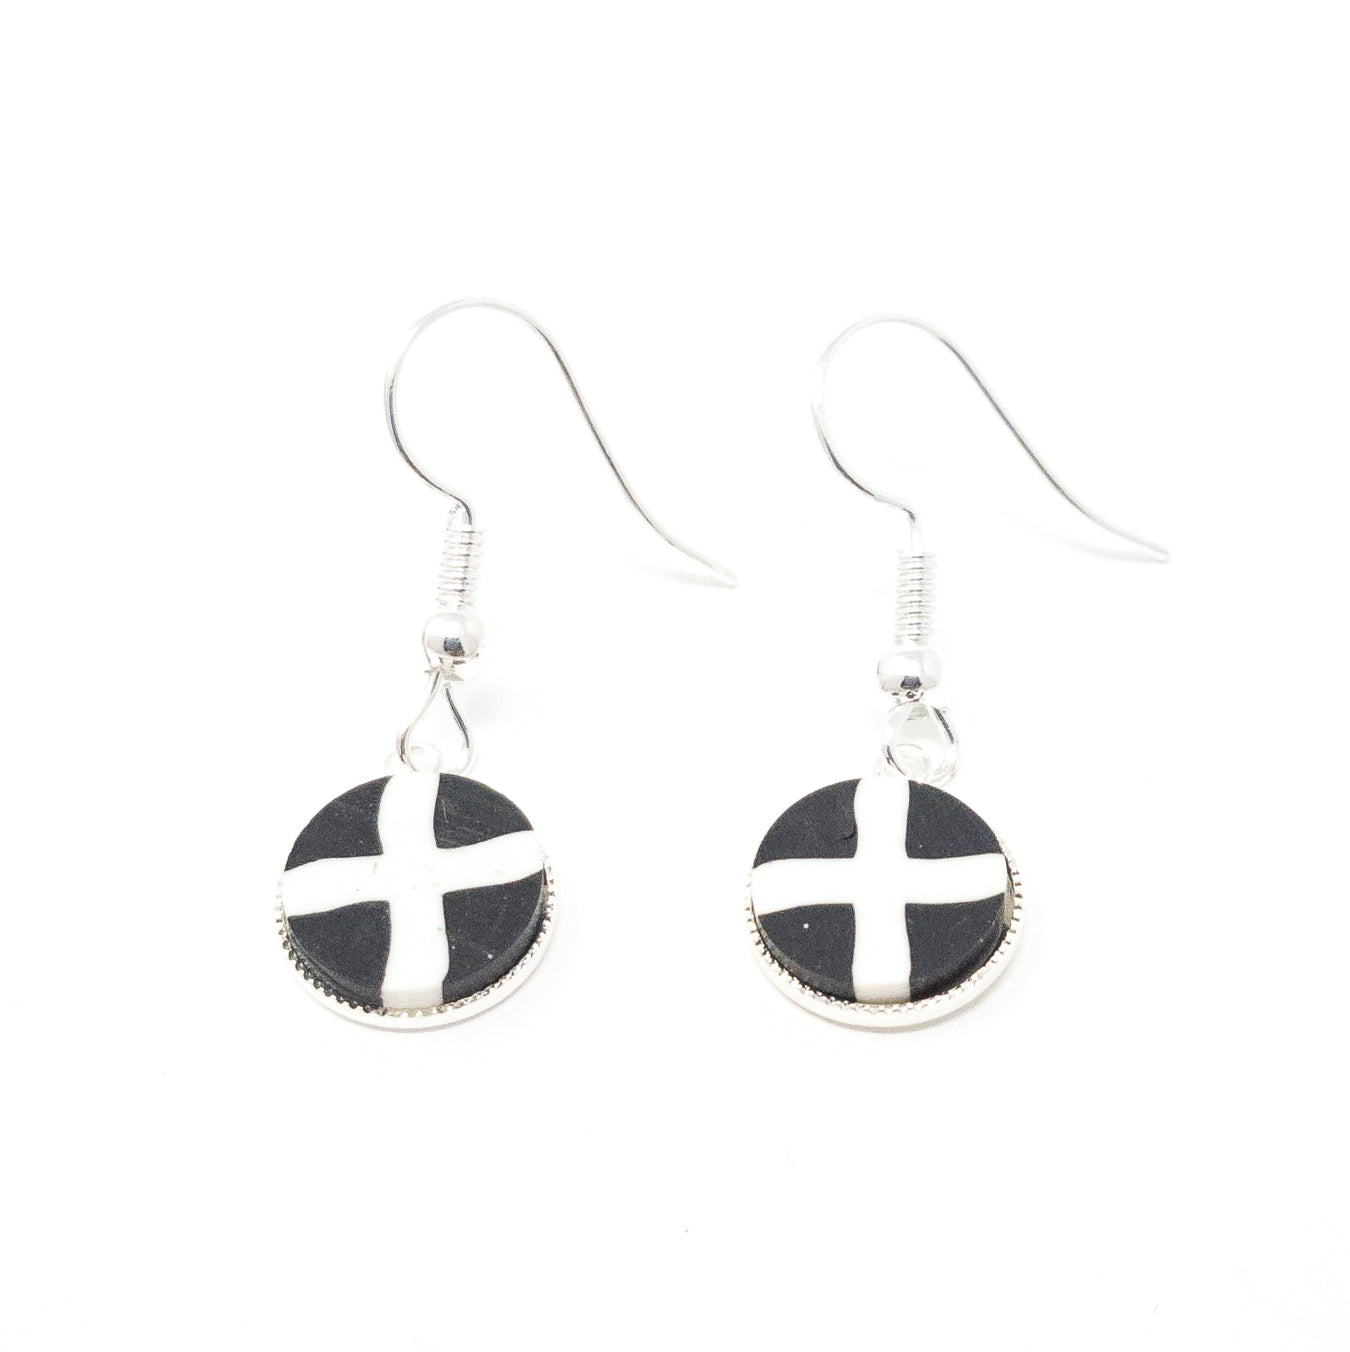 St Pirans Jewellery And Accessories